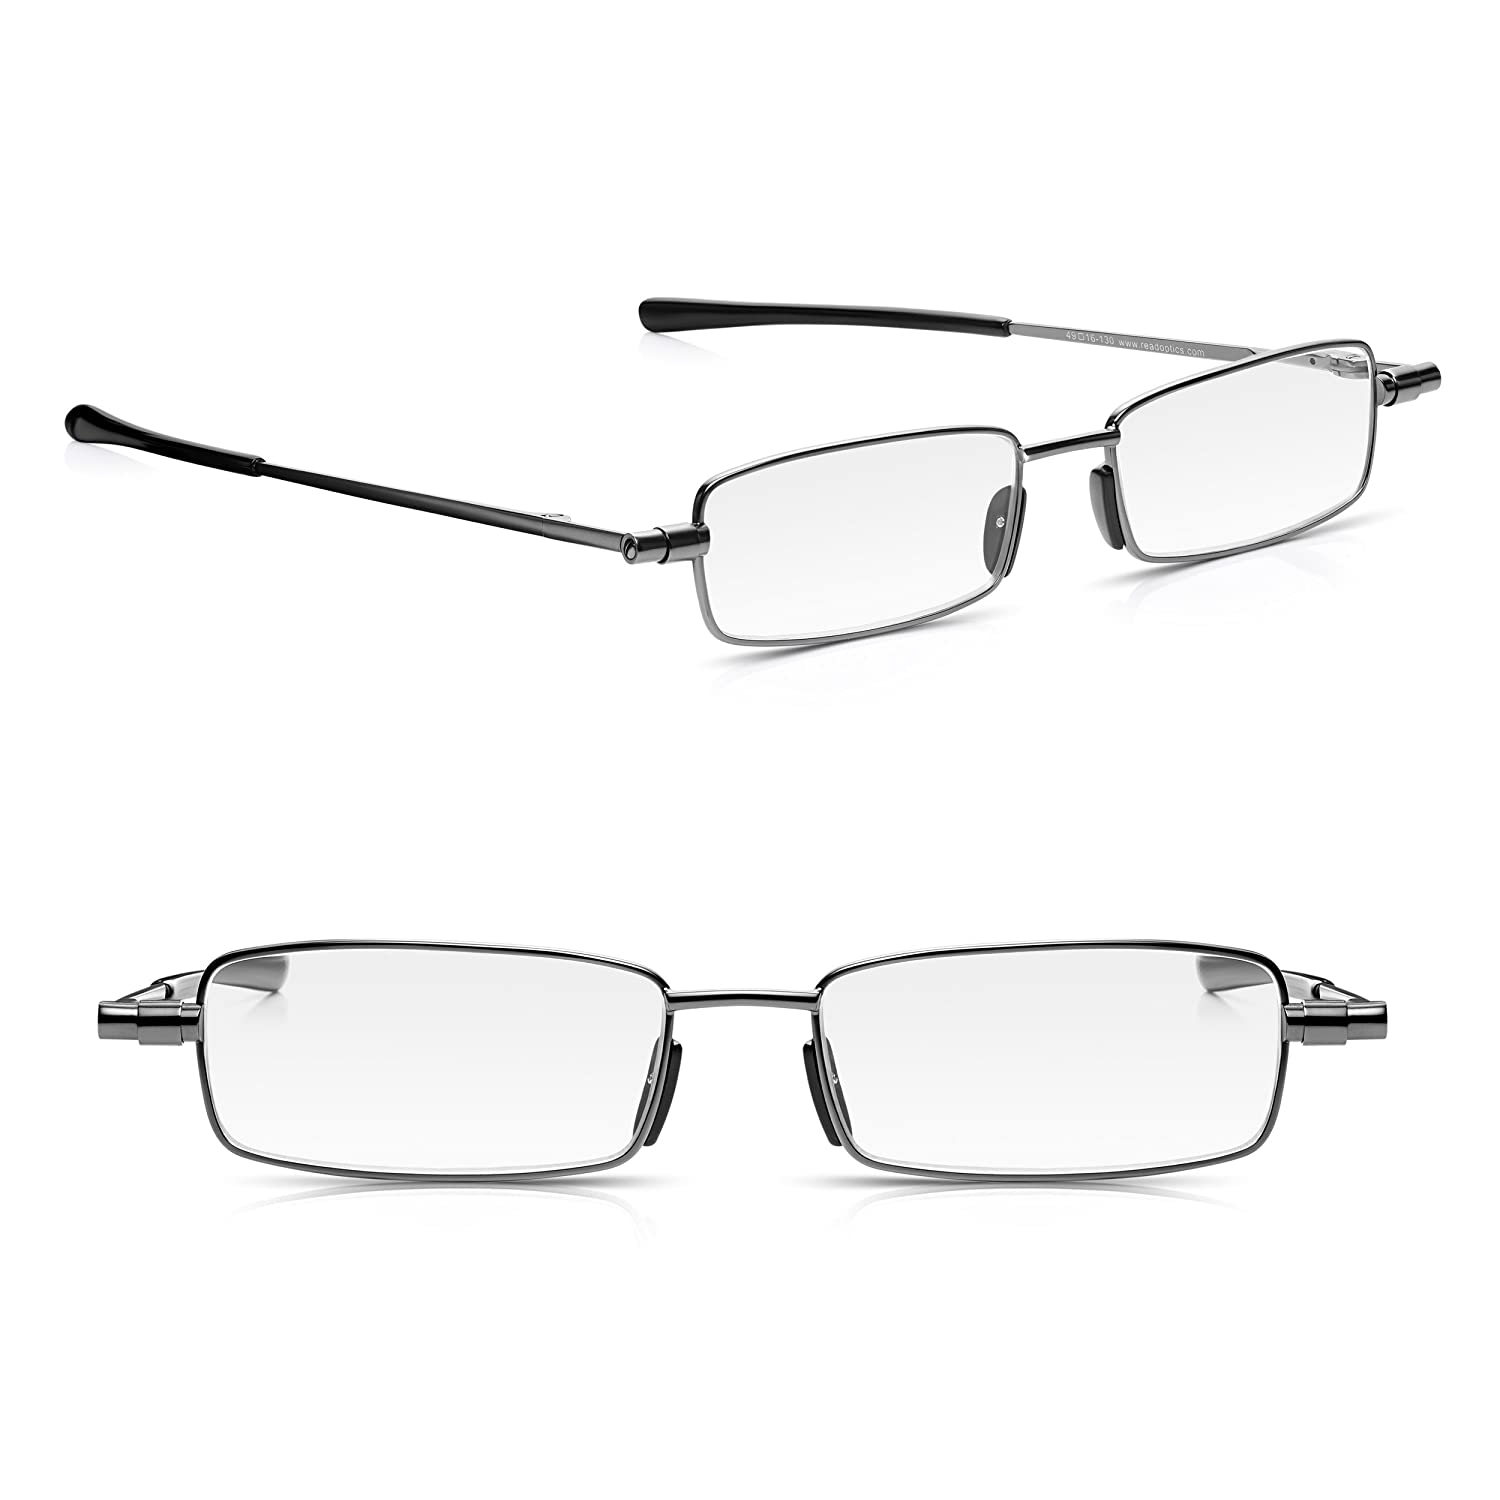 526ae58f1a 2 Pack Read Optics Foldable Reading Glasses Fold Up Flat into Thin Travel  Hard Case  +2.00 Mens Womens Patented Slim Folding Ready Readers Spectacles  with ...